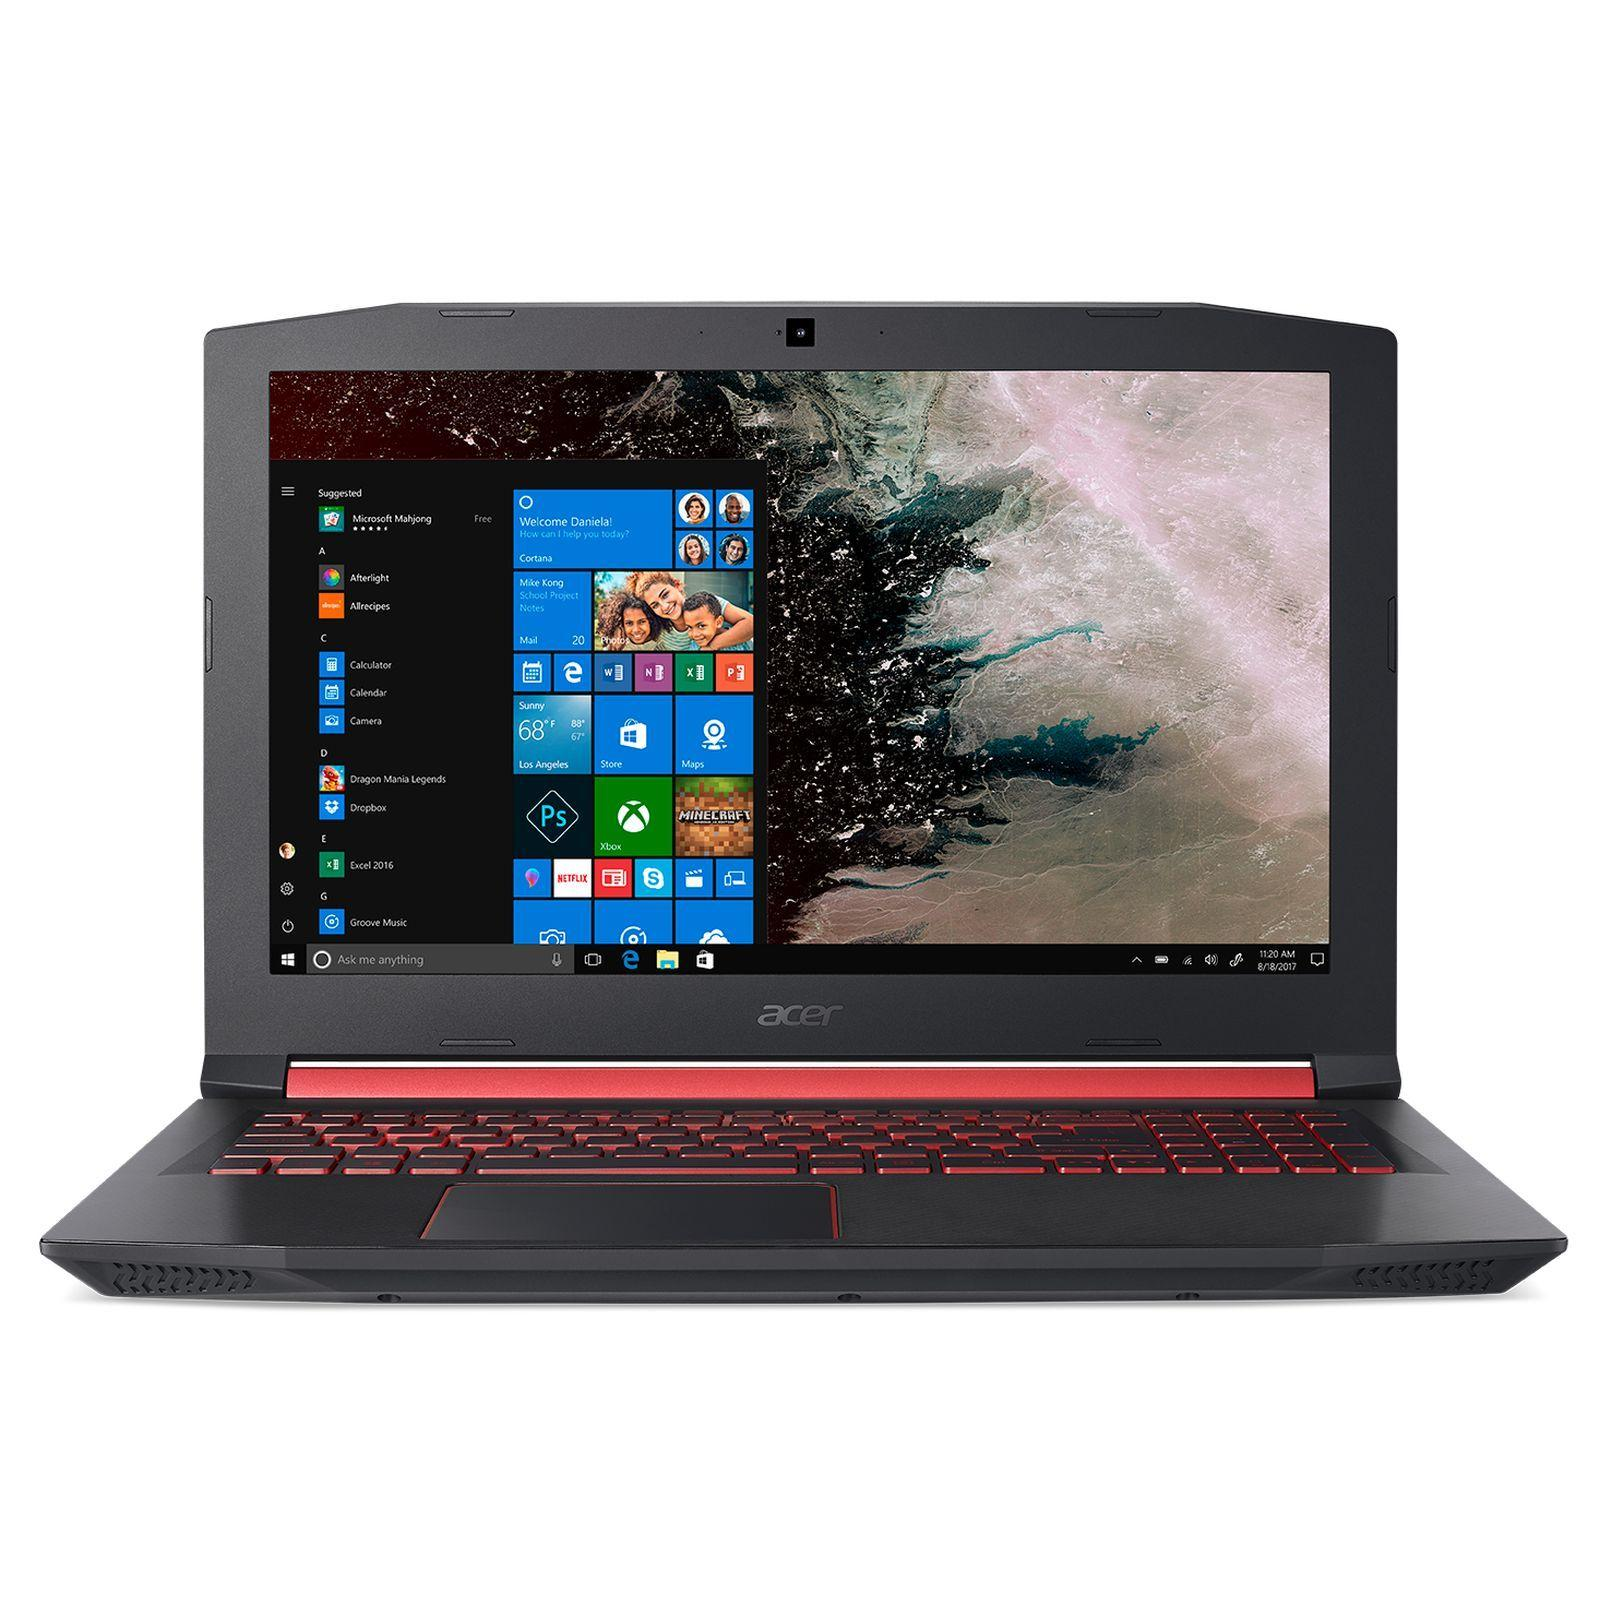 Acer Nitro 5 AN515-52-56RB Notebook Series with Win10 Pro (64-bit)